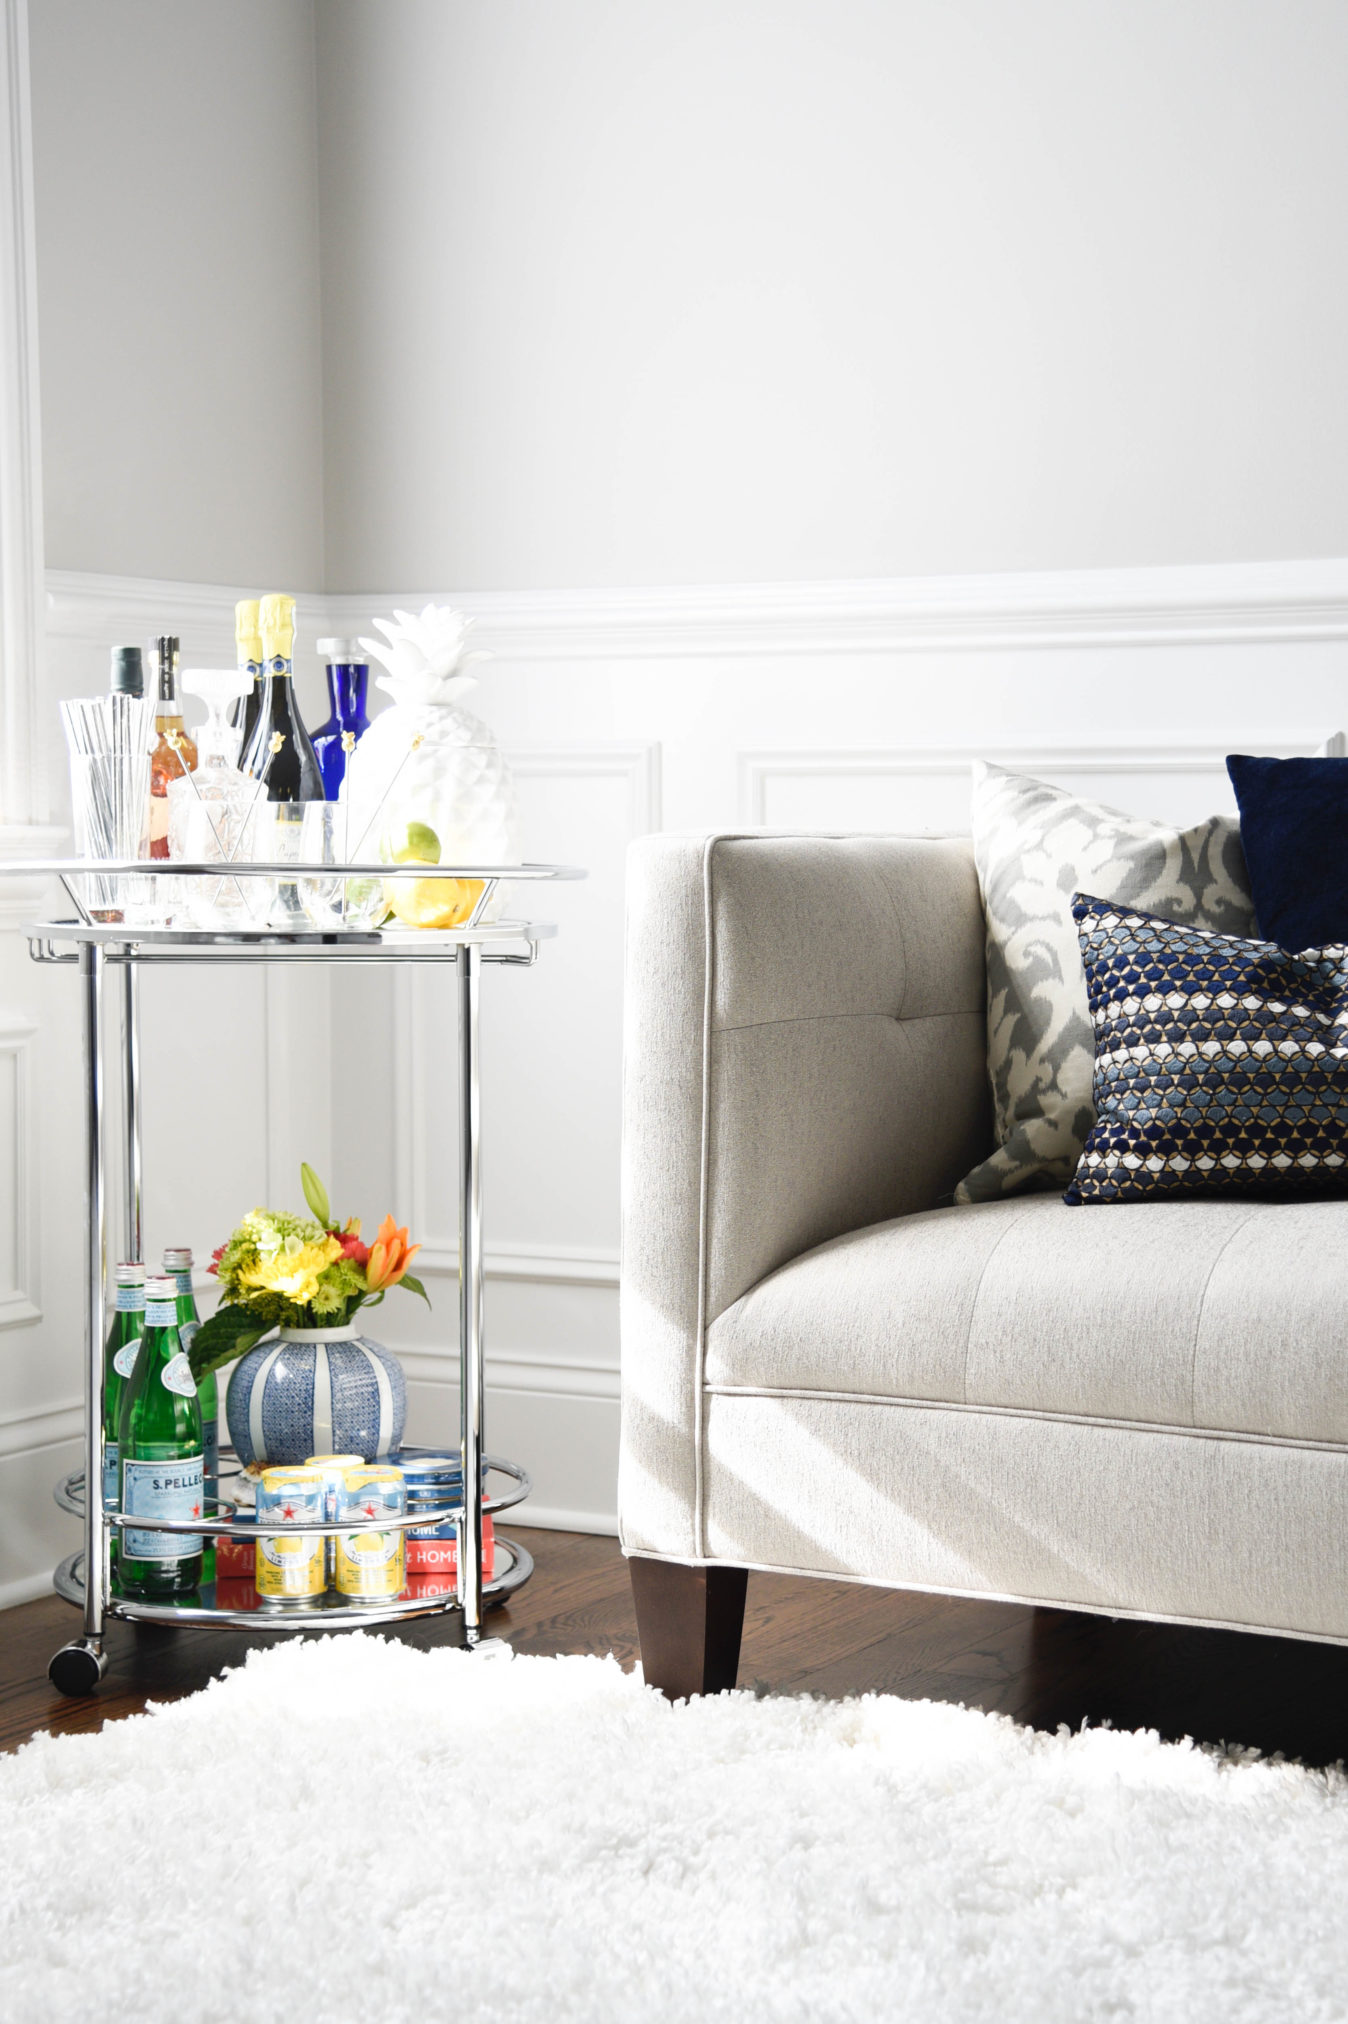 How To Style The Perfect Bar Cart For Any Party Home With Keki